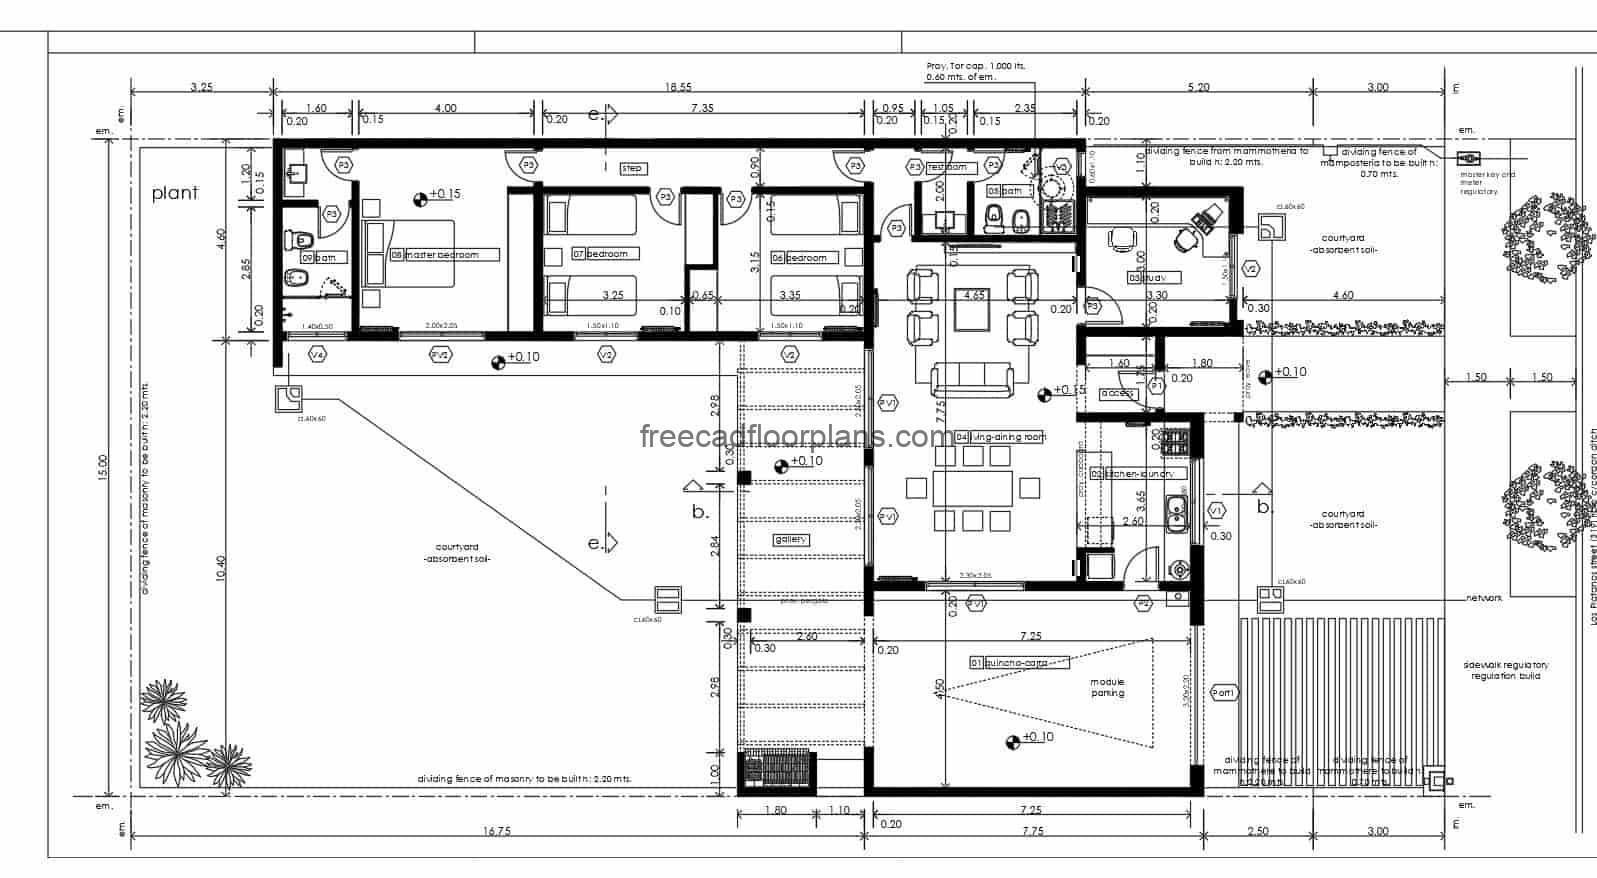 autocad drawing file for free download, one level house with three bedrooms